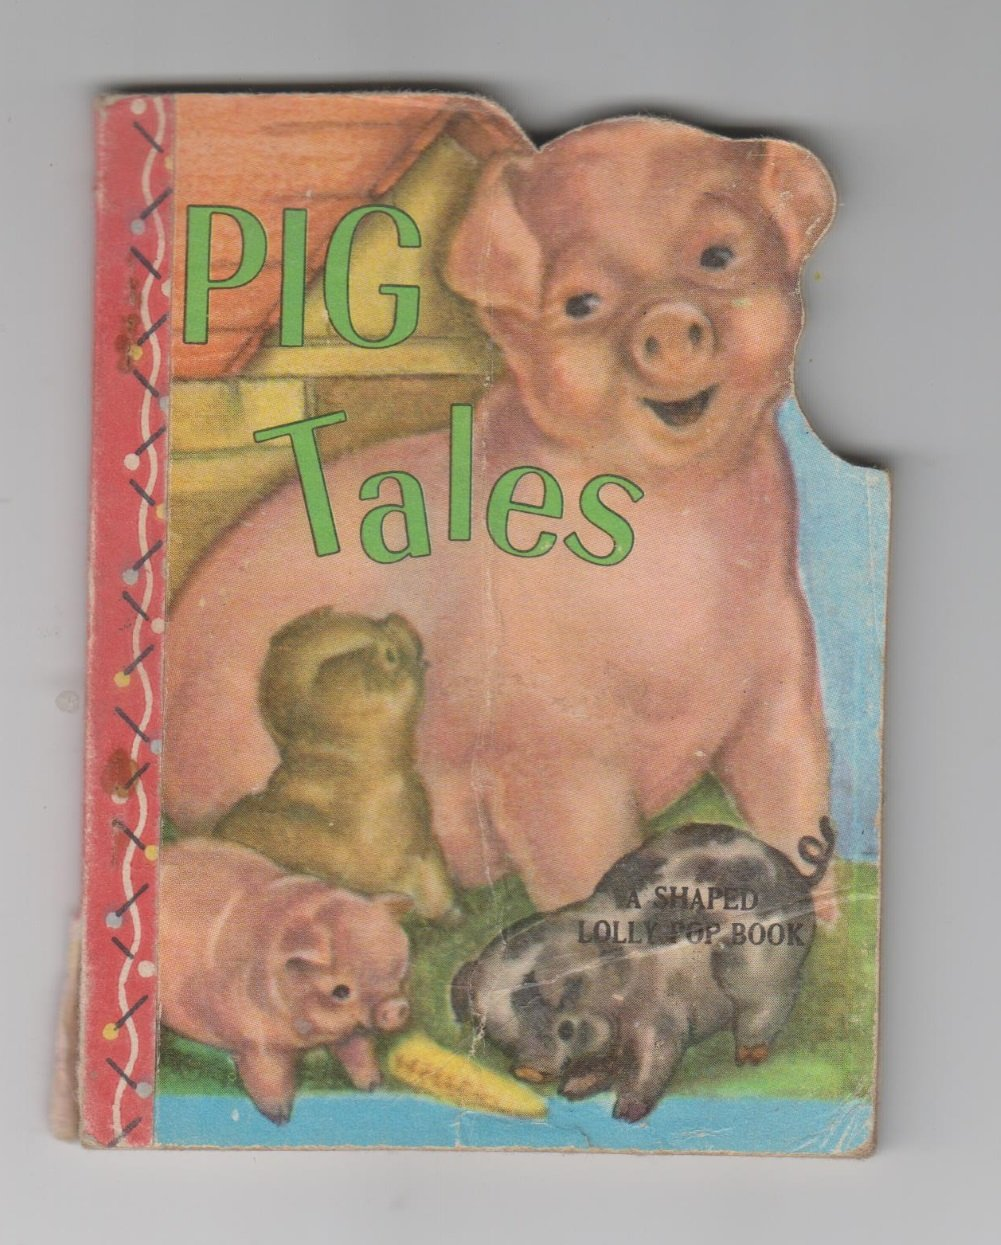 Pig Tales ( A Shaped Lolly Pop Book ) Kenosha,Wisconsin,Samuel Lowe Company,1949